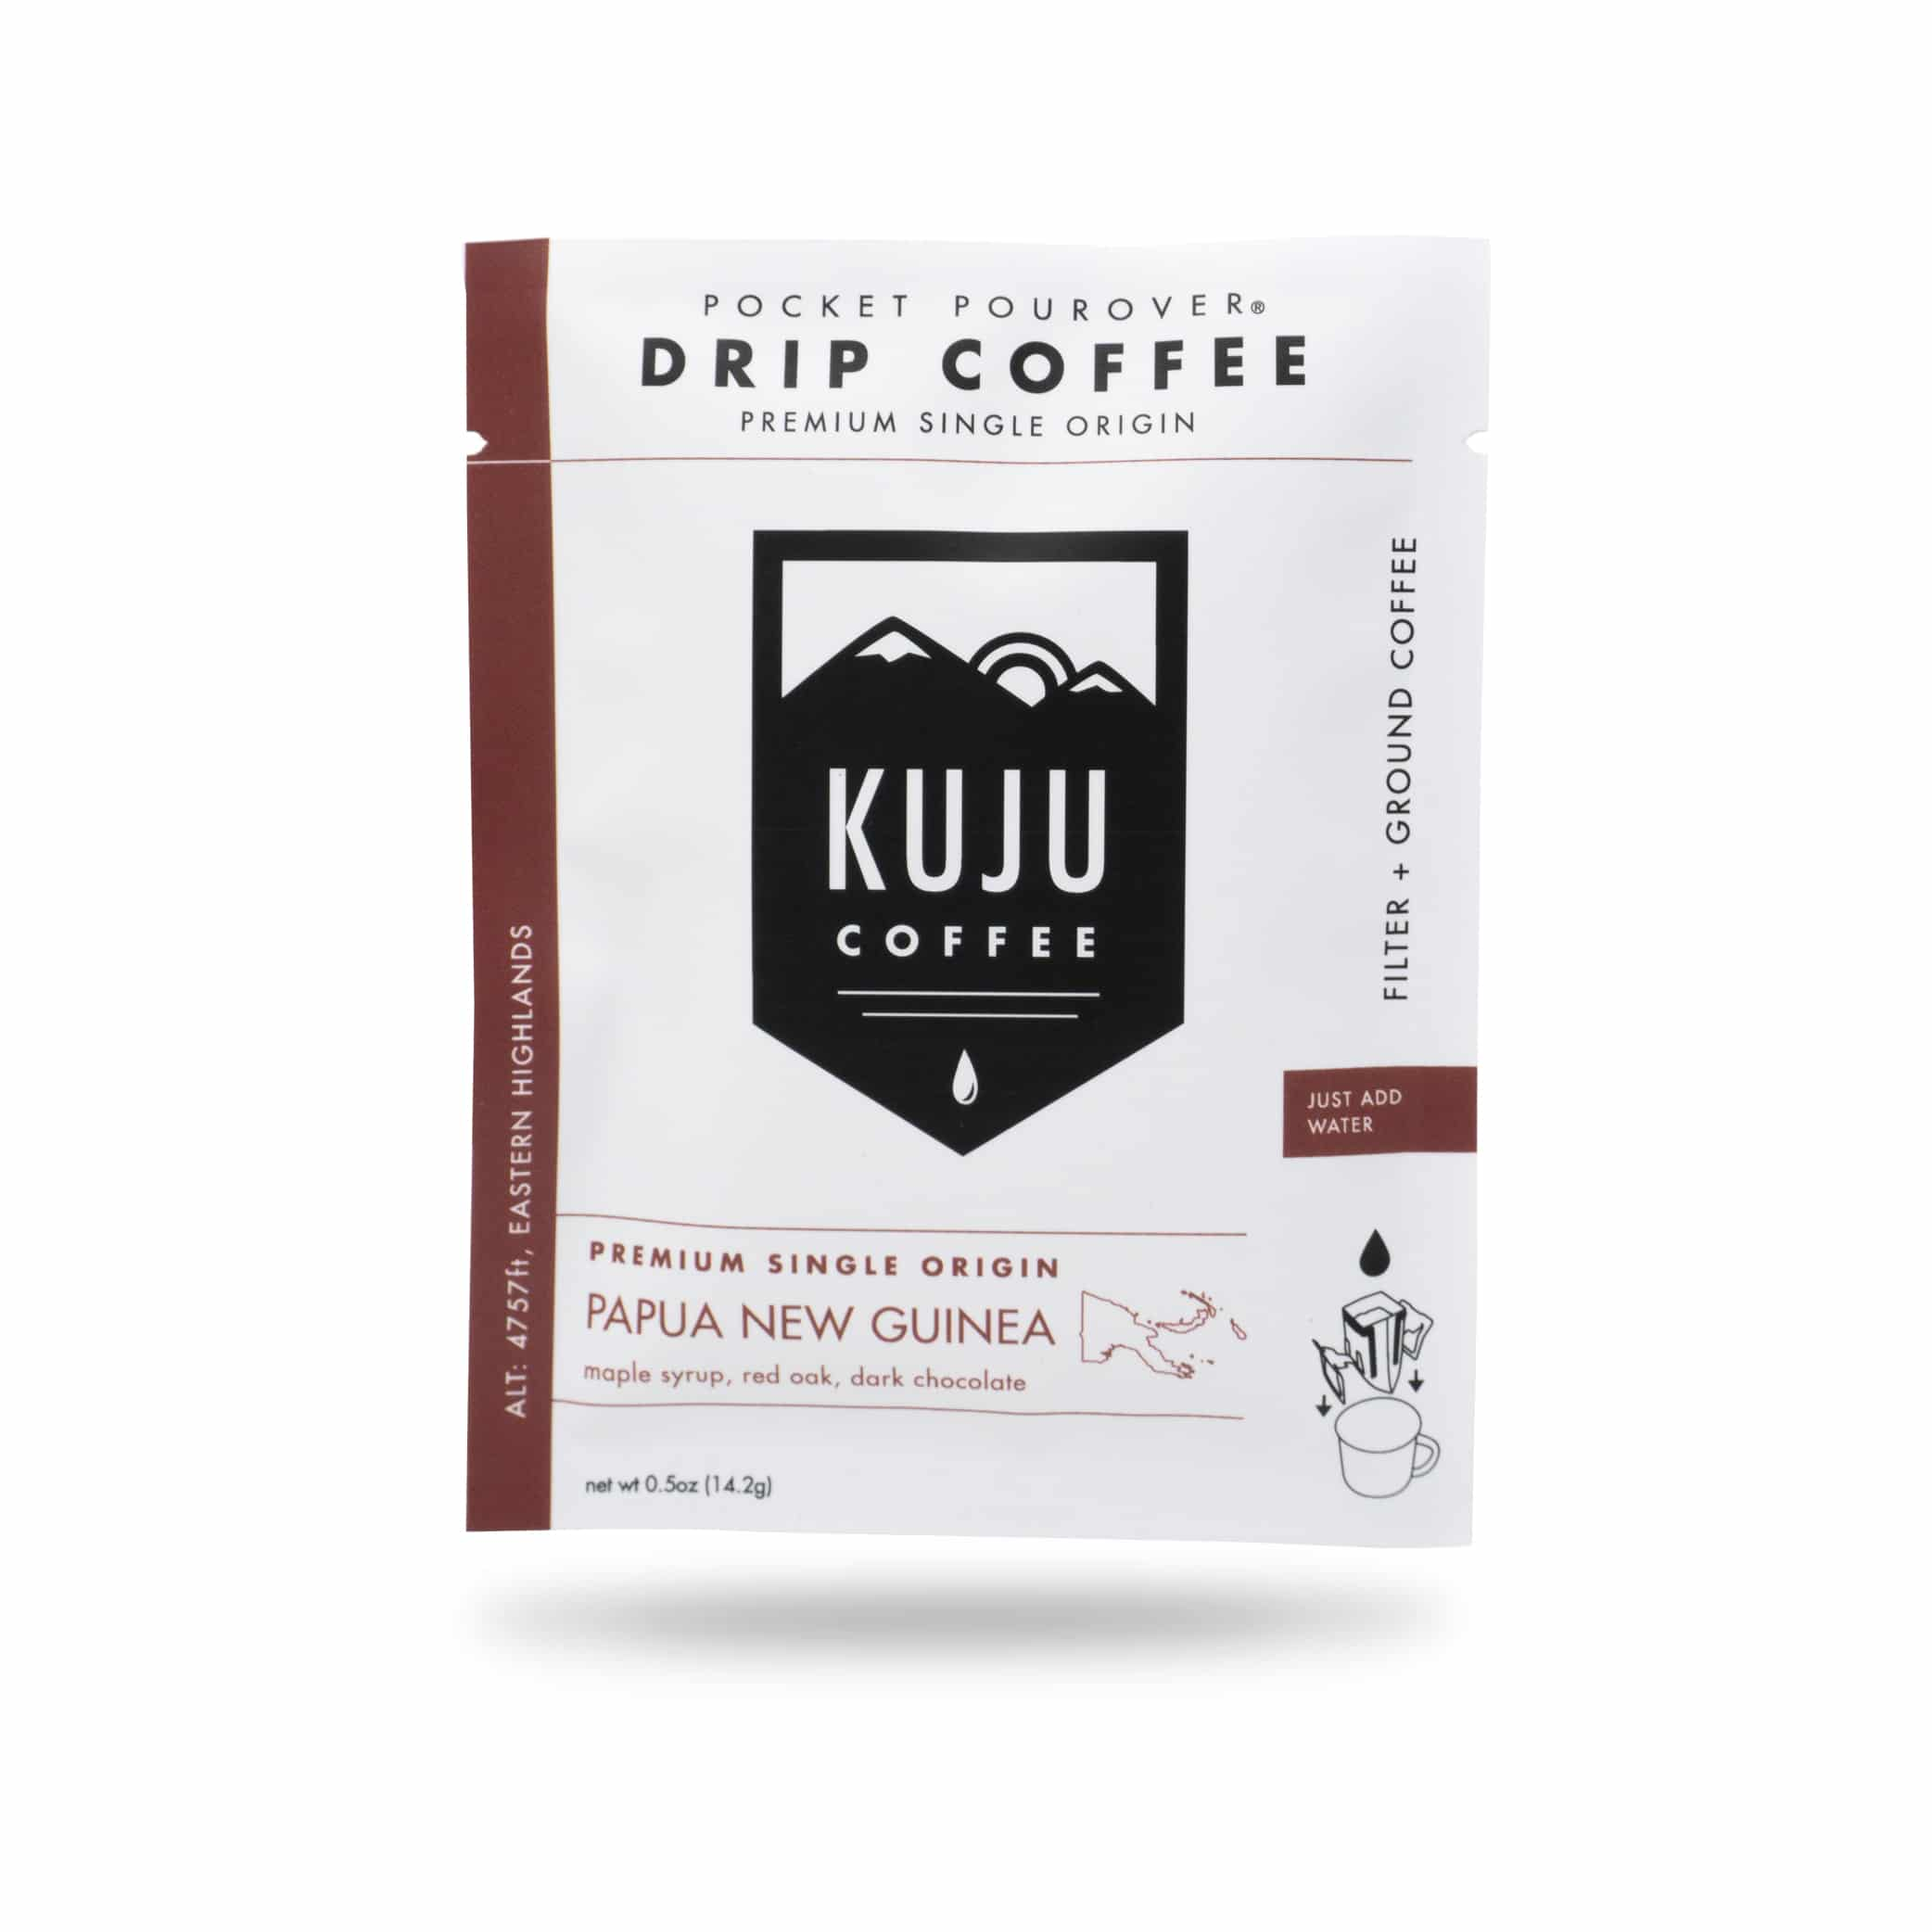 Kuju Coffee Launches Single Origin Pocket PourOvers